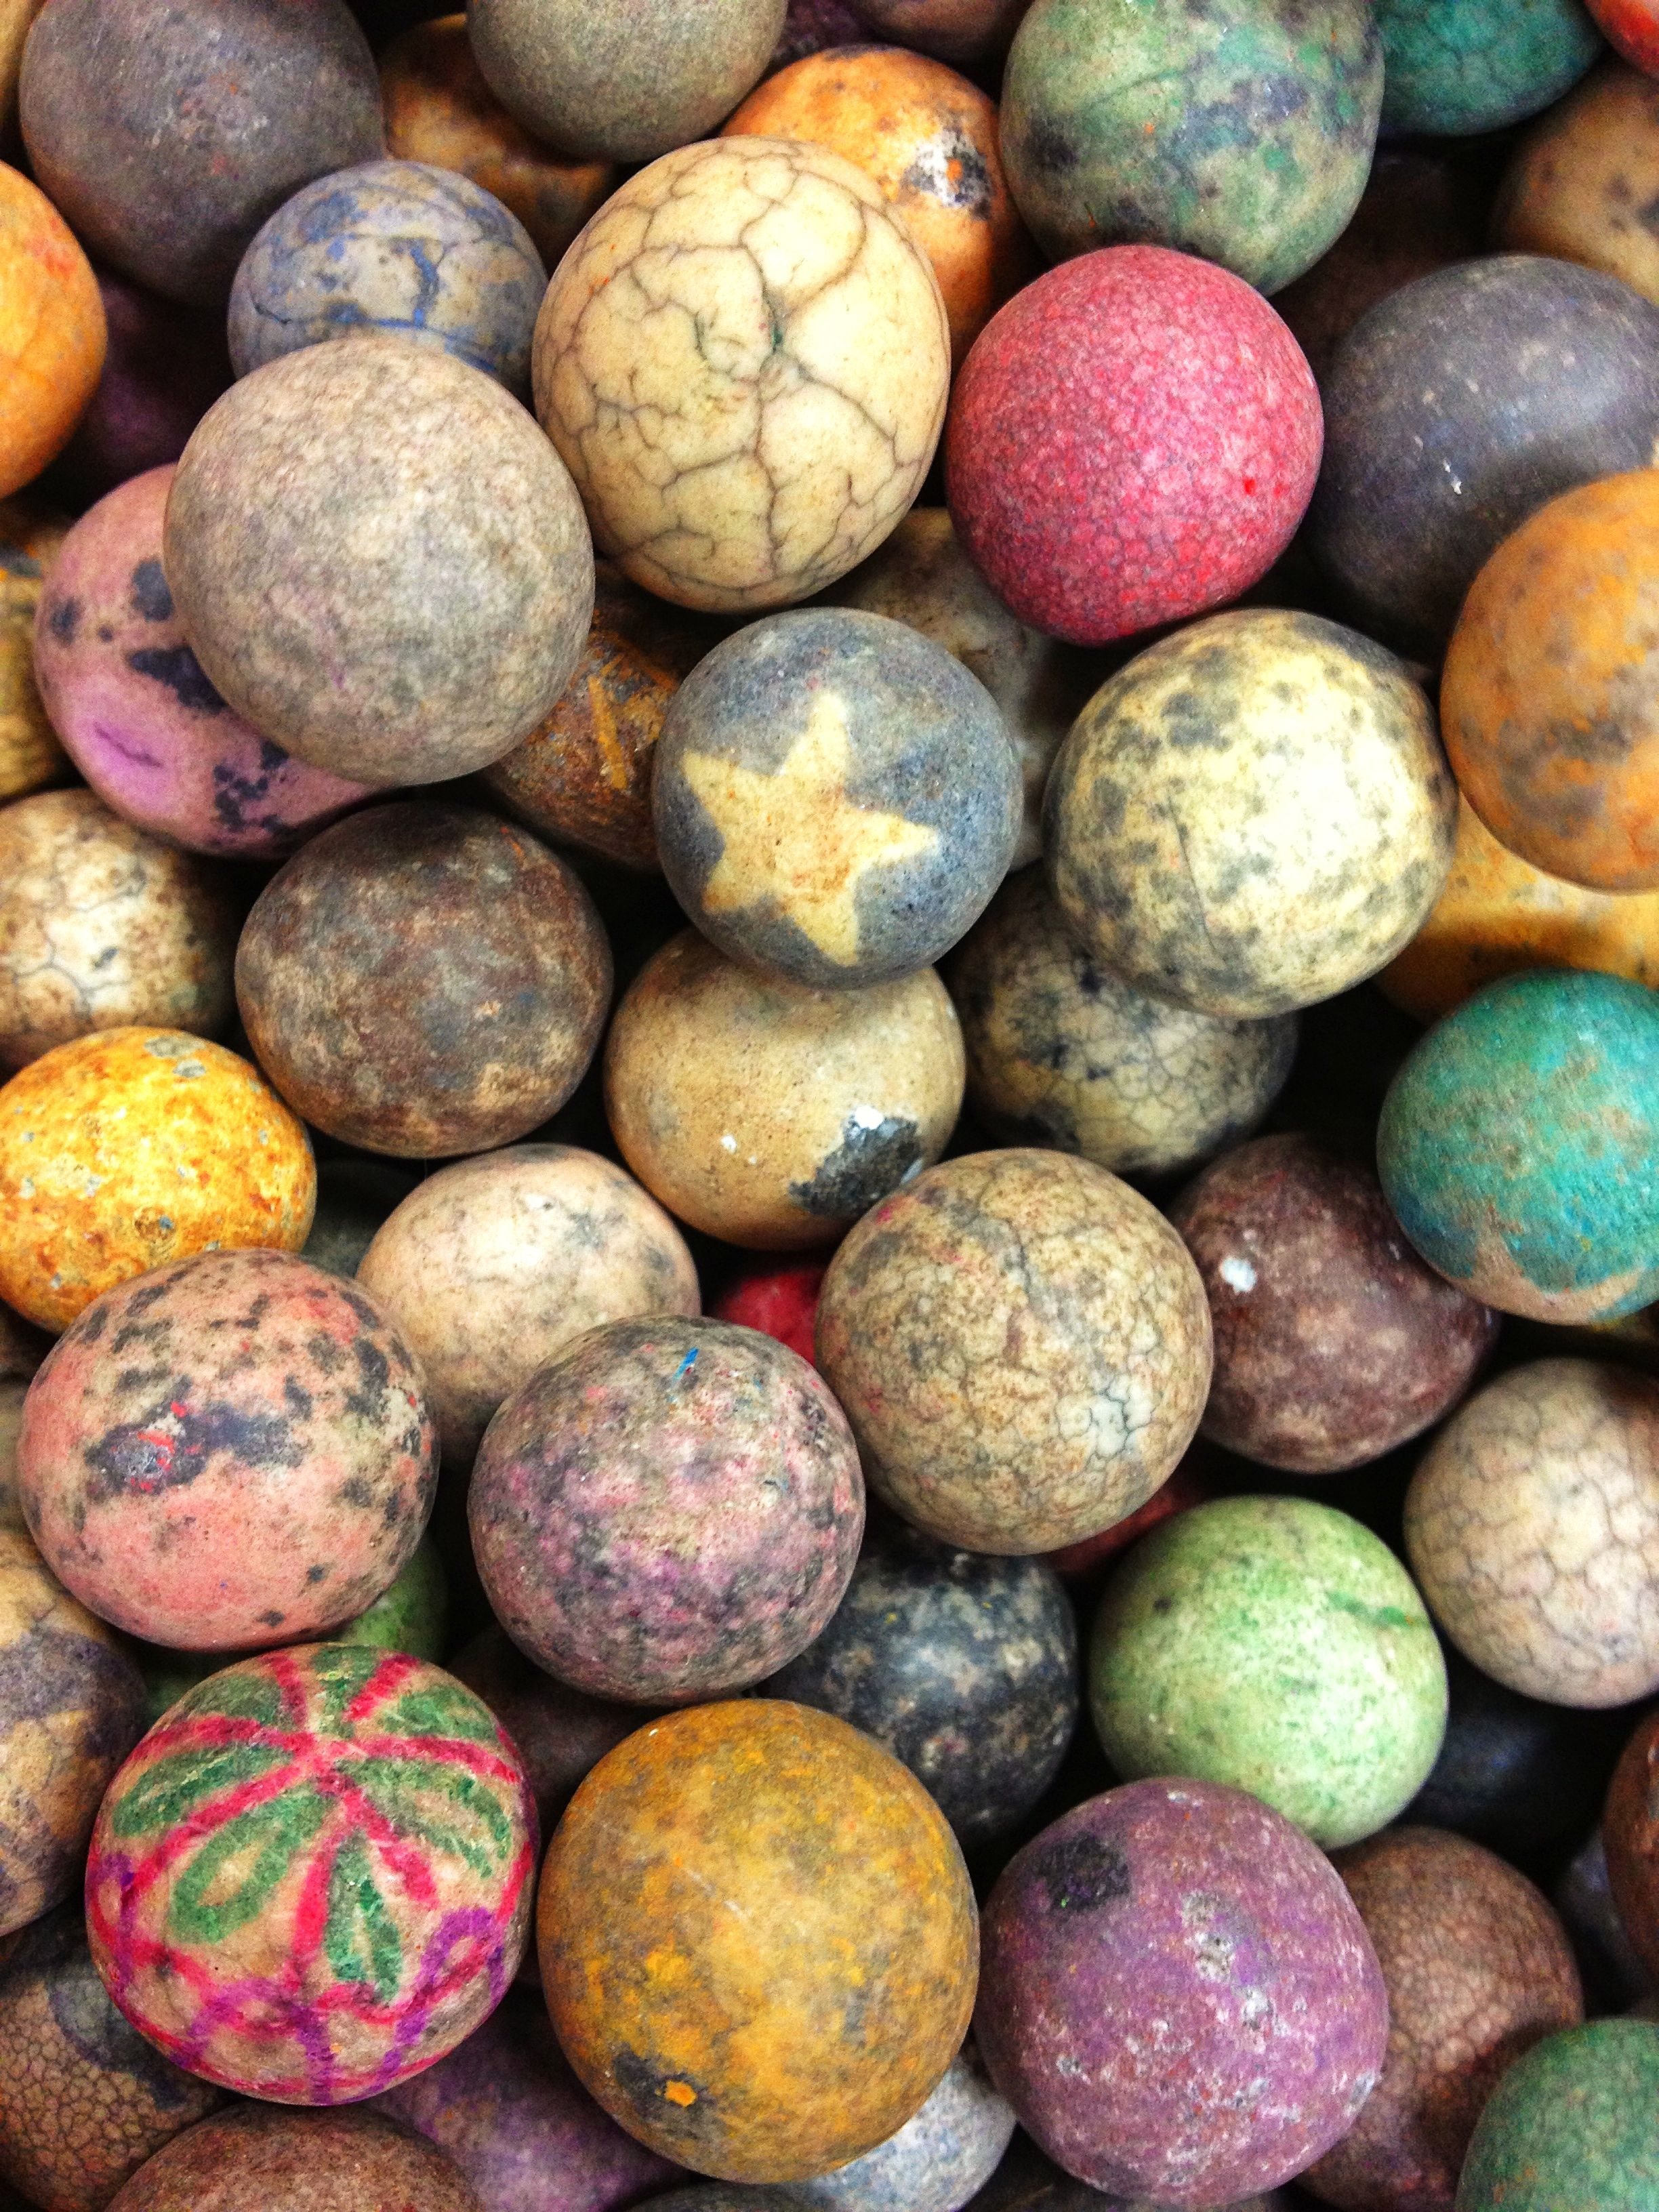 Antique Crock Marbles Have Not Heard Of These Before